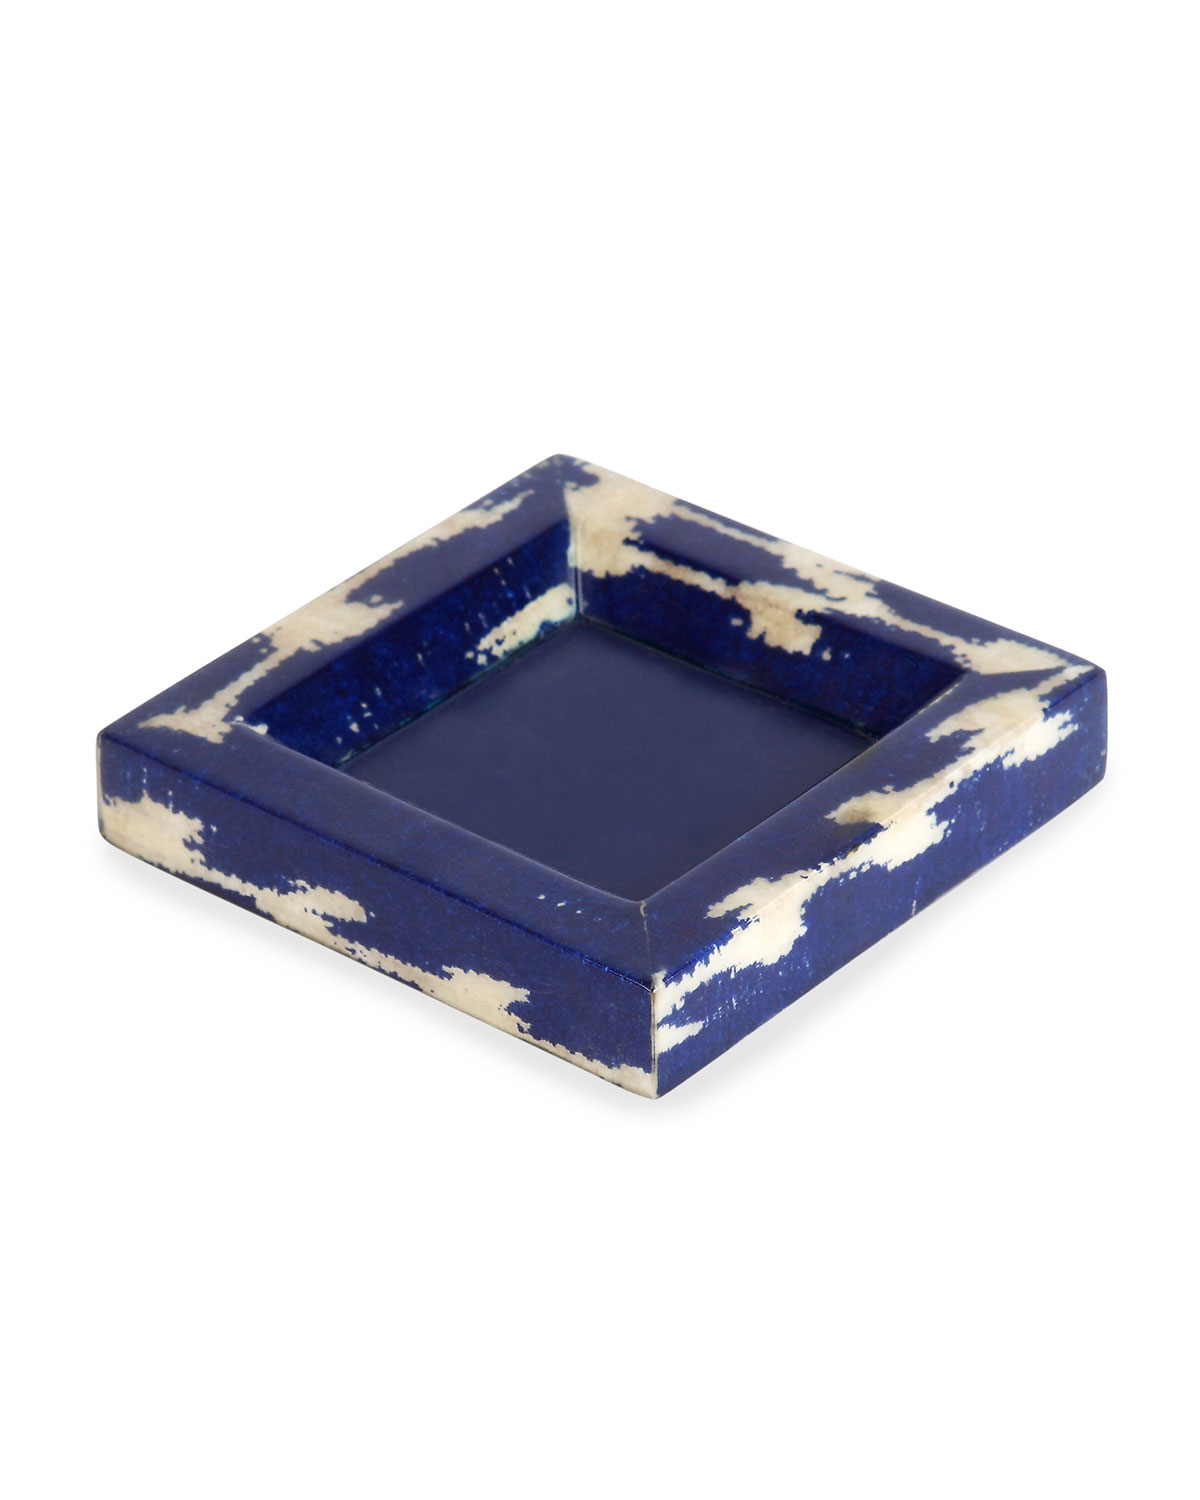 SV Casa Papyrus Collection Soap Dish